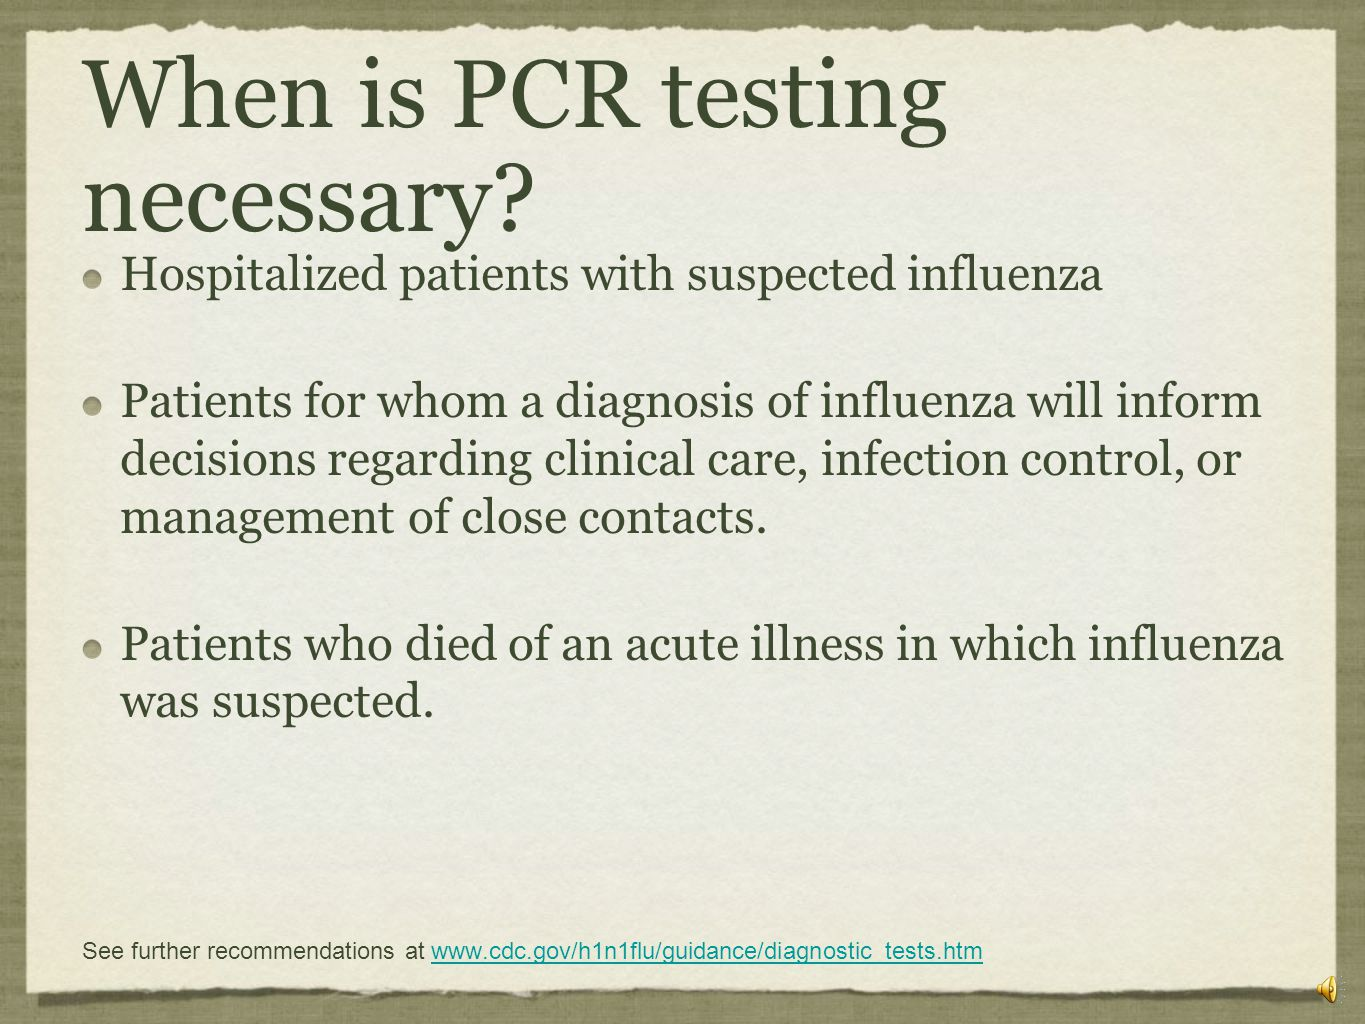 When is PCR testing necessary